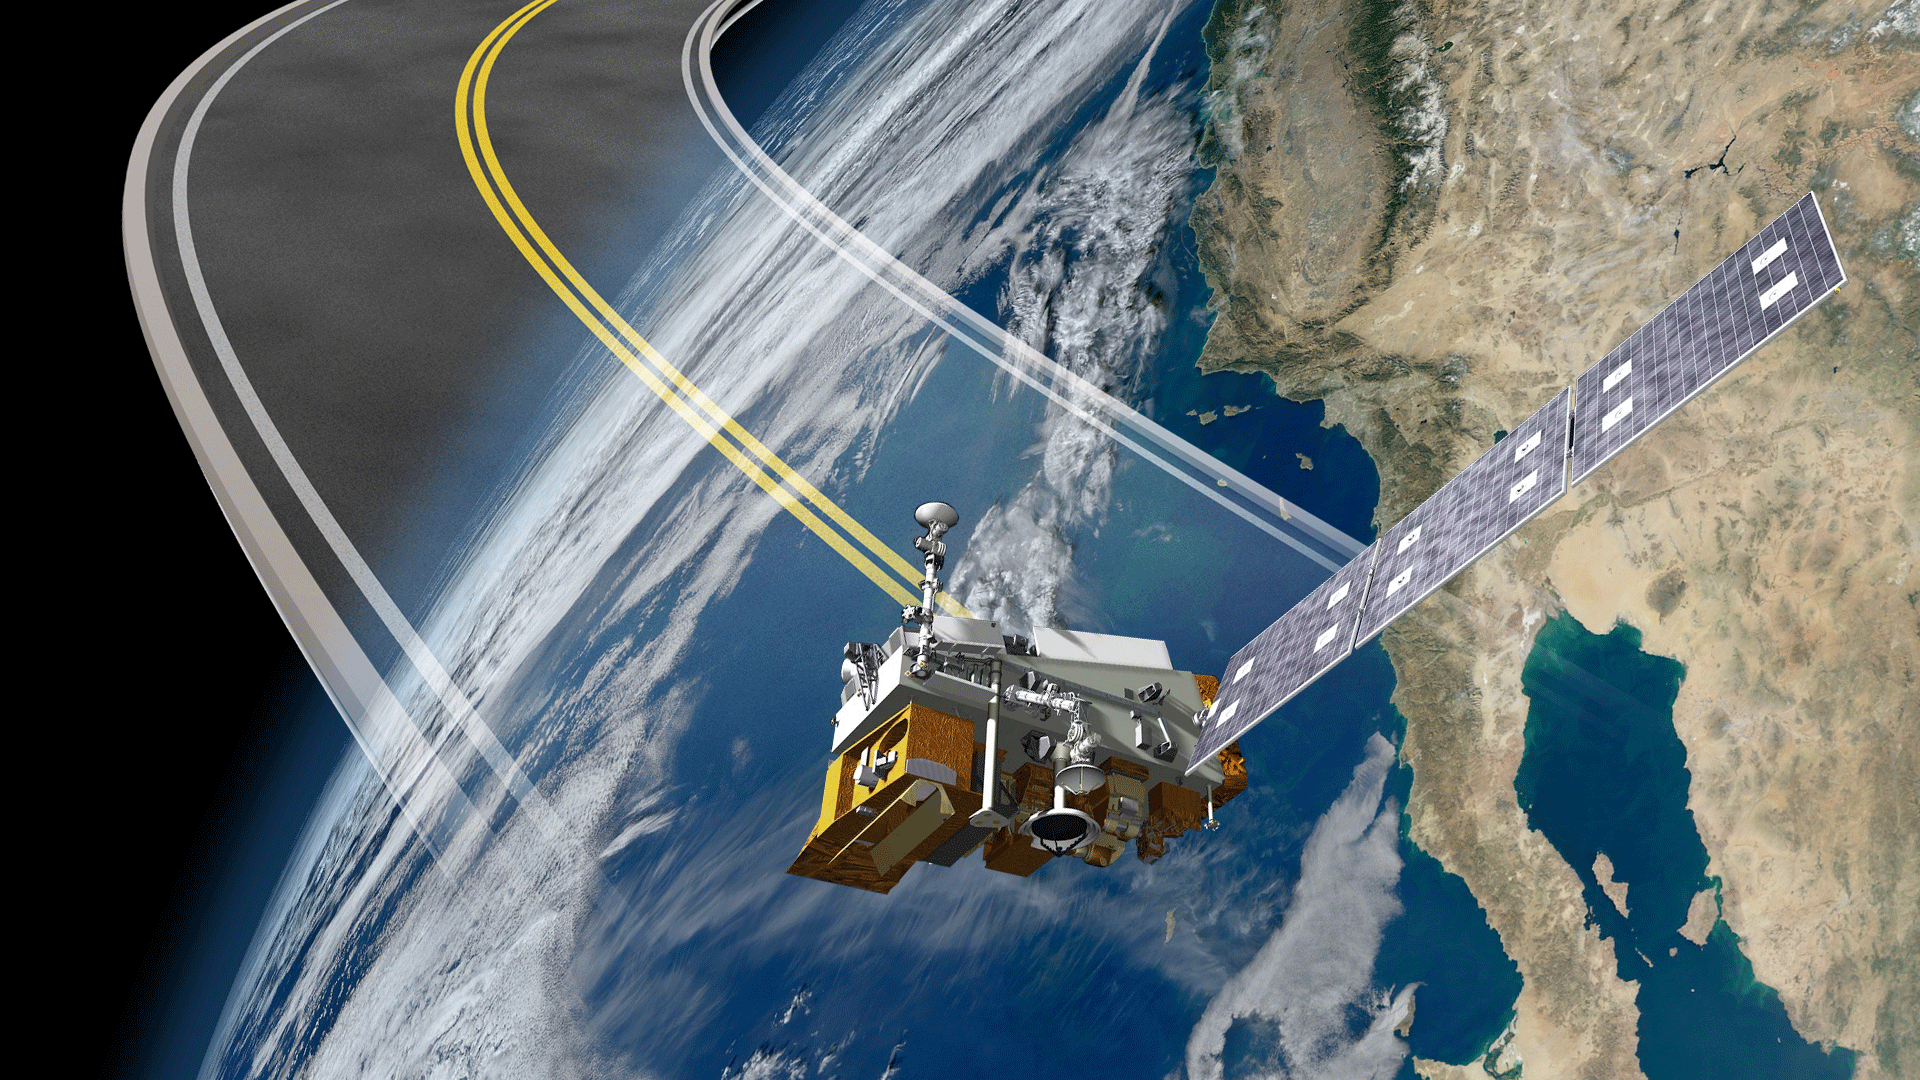 Artist's rendering of the JPSS-1 satellite in orbit (NASA Photo)